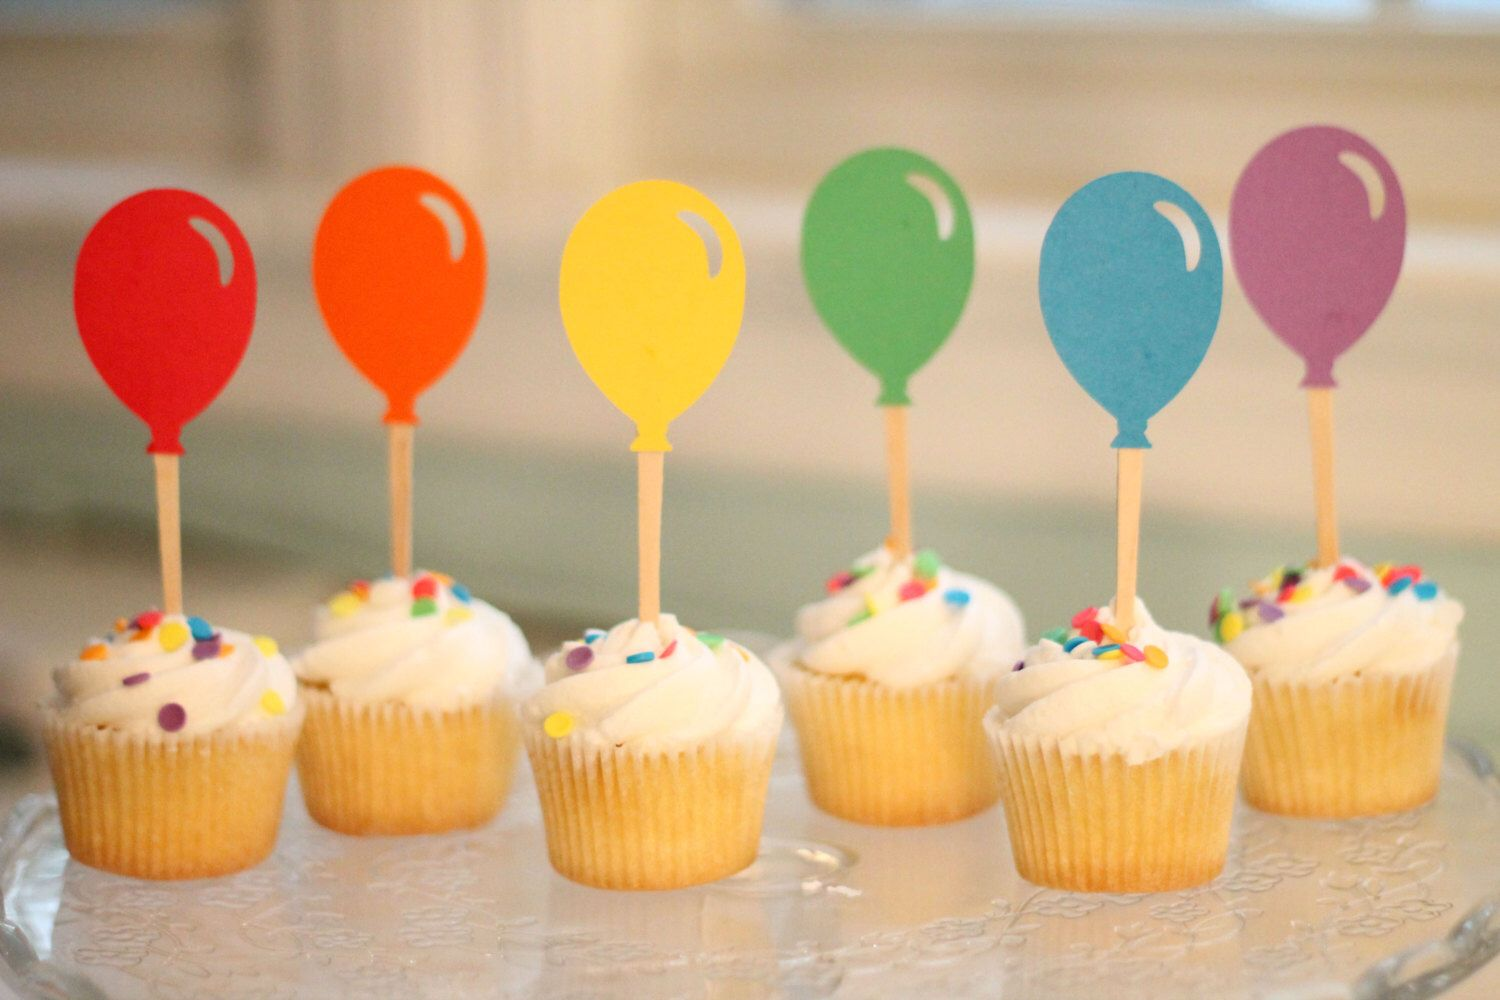 Mini Rainbow Balloon Cupcake Toppers - Set of 24 by ThePaperWonderland on Etsy https://www.etsy.com/listing/189103138/mini-rainbow-balloon-cupcake-toppers-set